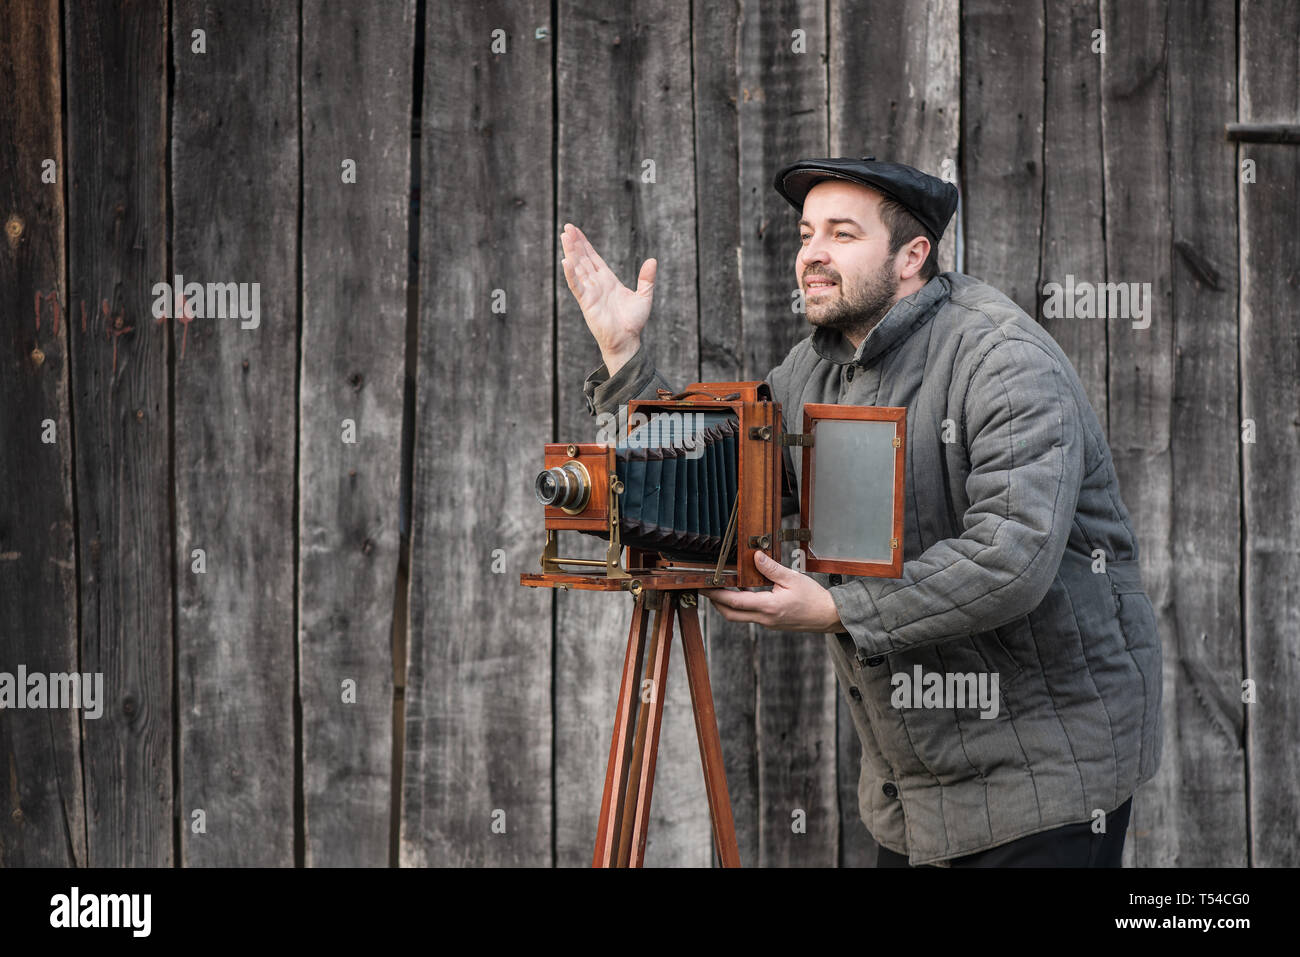 Photographer works with large format camera, retro style. Concept - photography of the 1930s-1950s - Stock Image